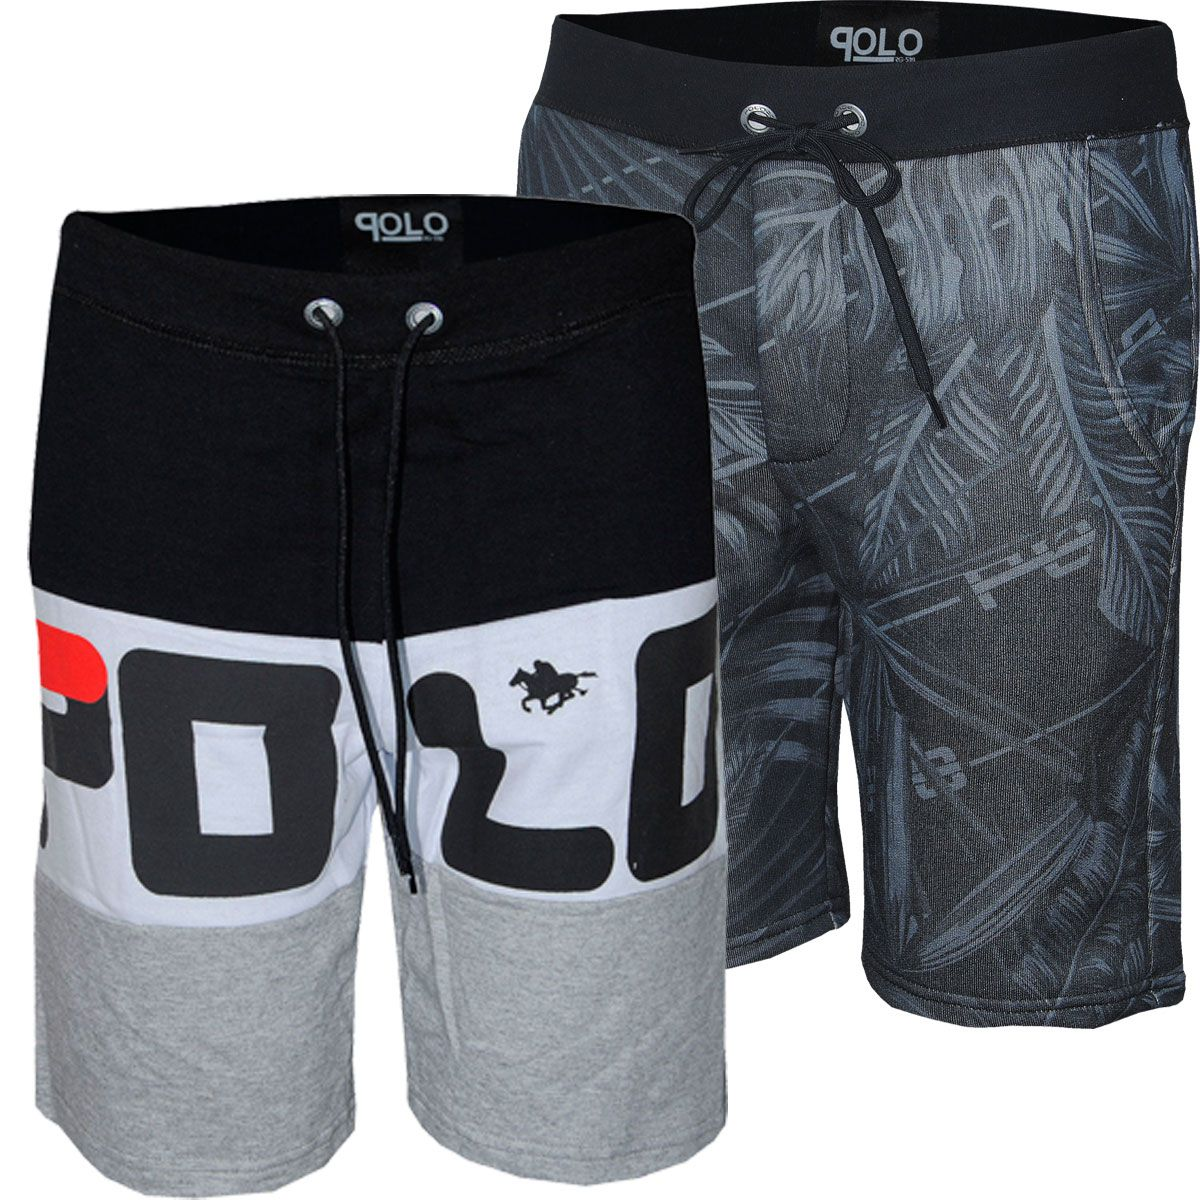 Kit Bermudas Masculinas em Moletom Estampa Silk e Sublimada